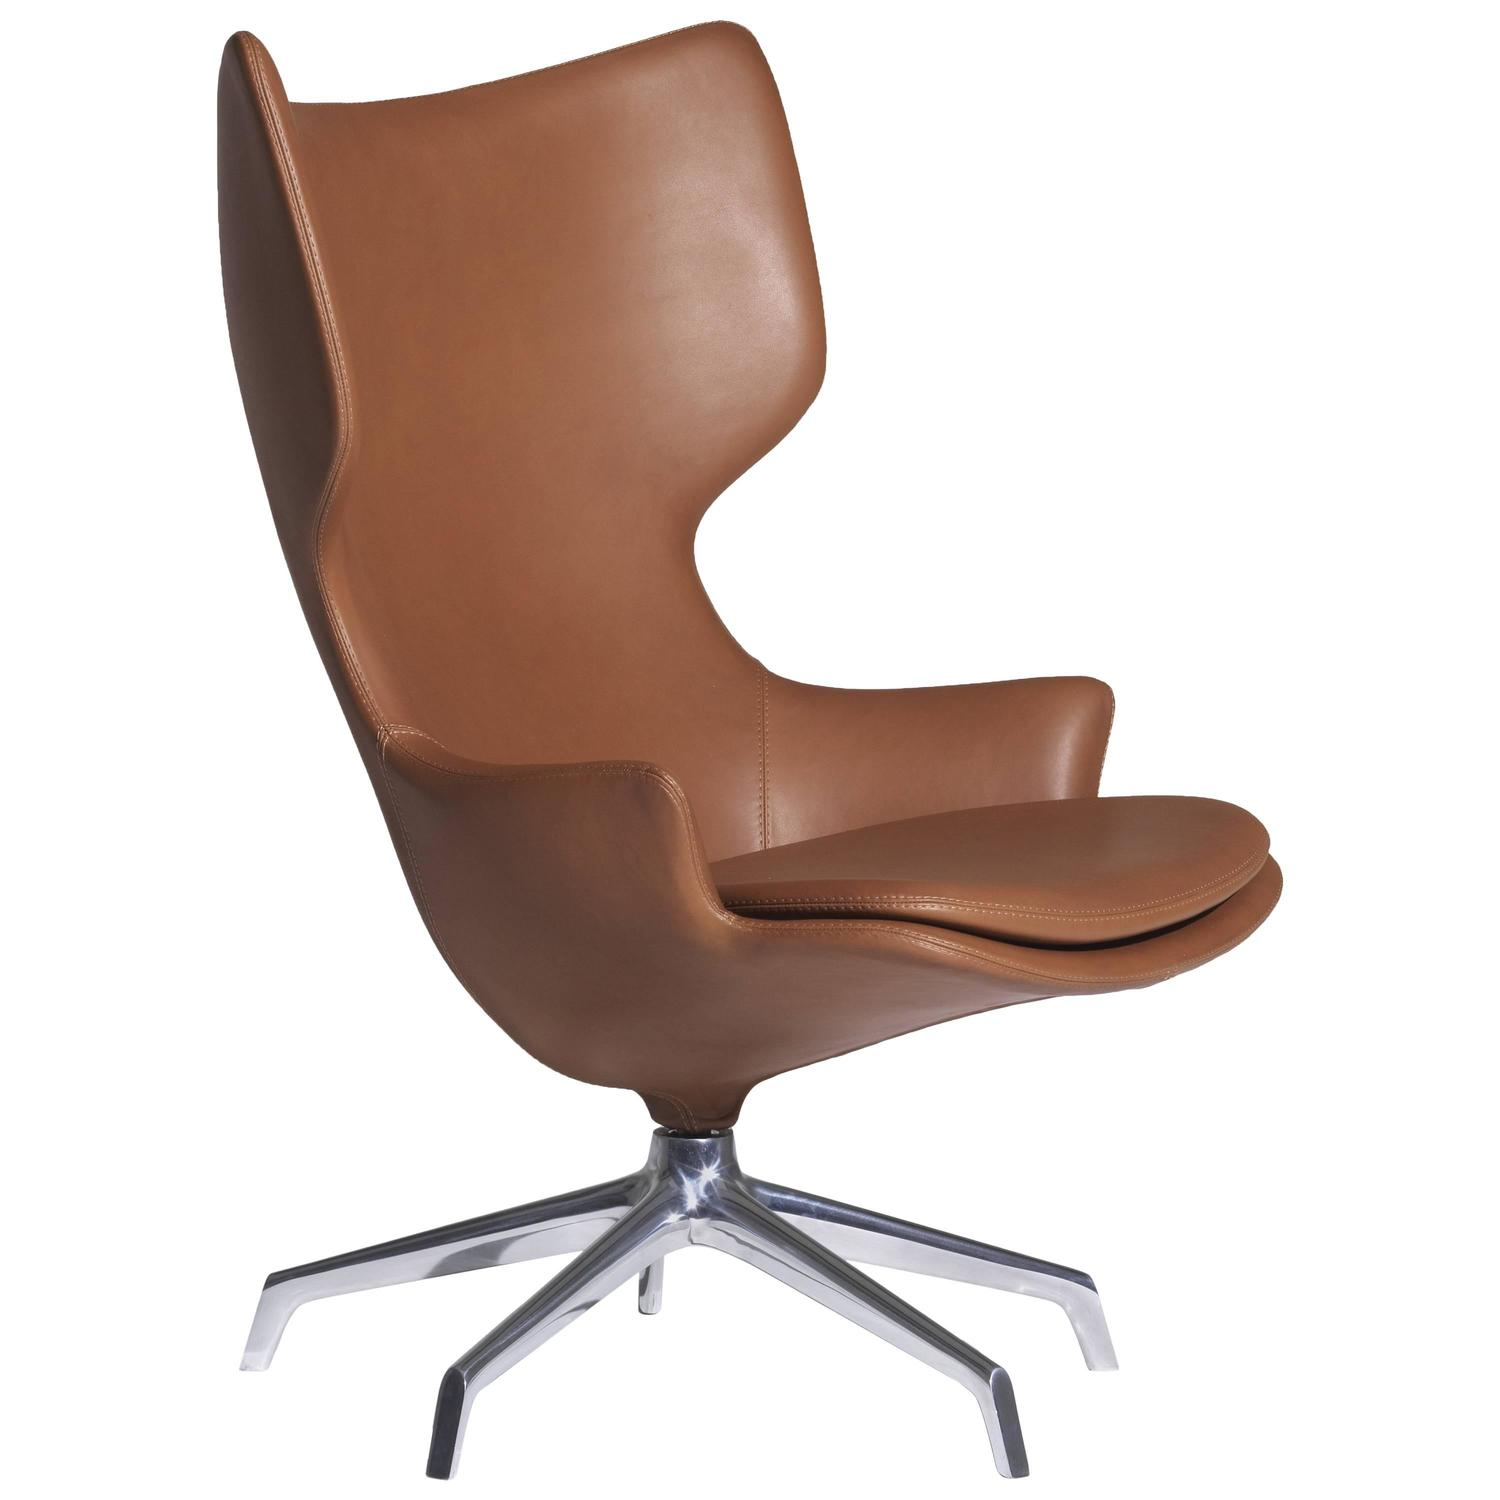 Philippe Starck Furniture Chairs Sofas Tables & More 170 For